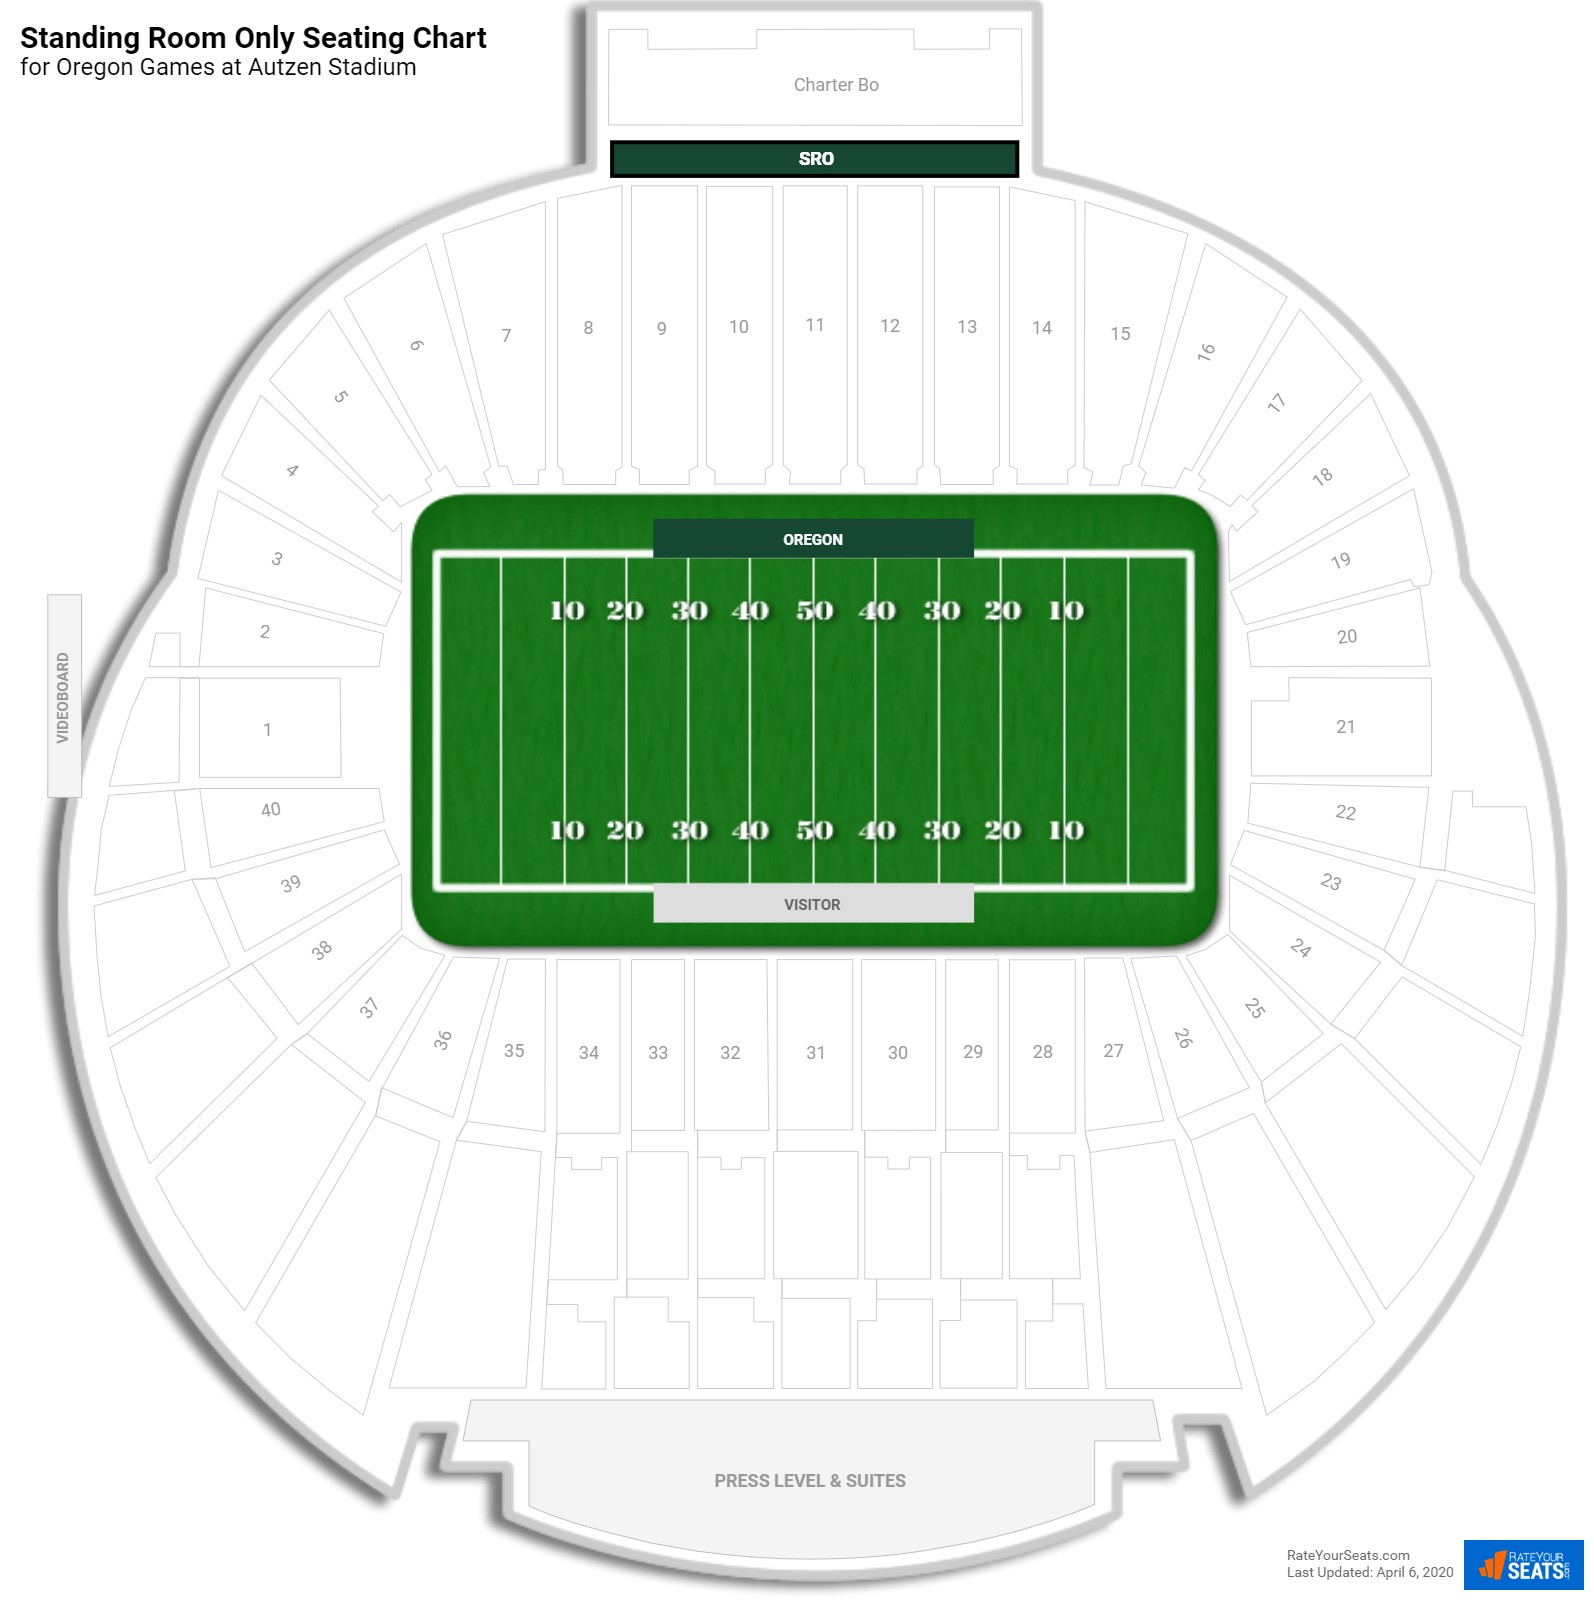 Autzen Stadium Standing Room Only seating chart